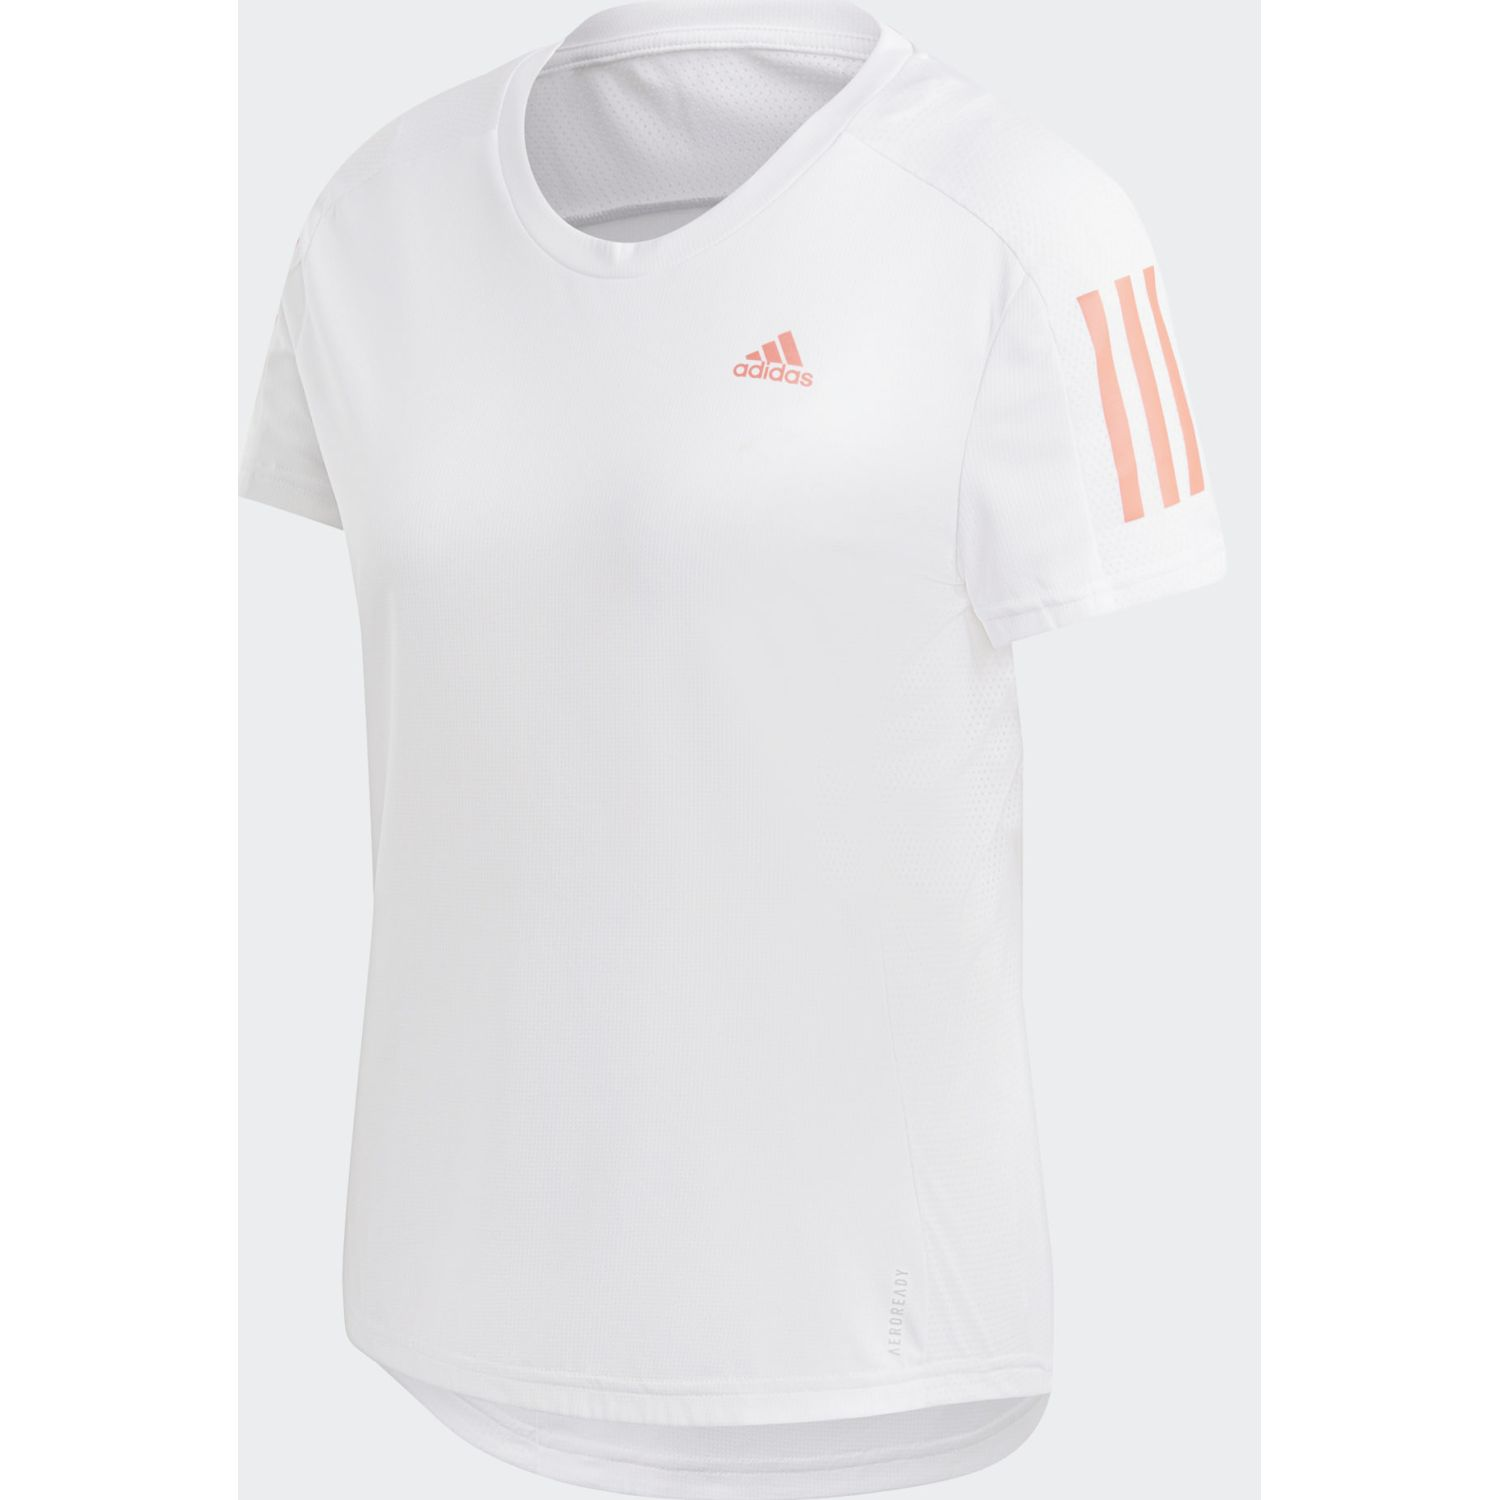 Adidas Own The Run Tee Blanco Polos